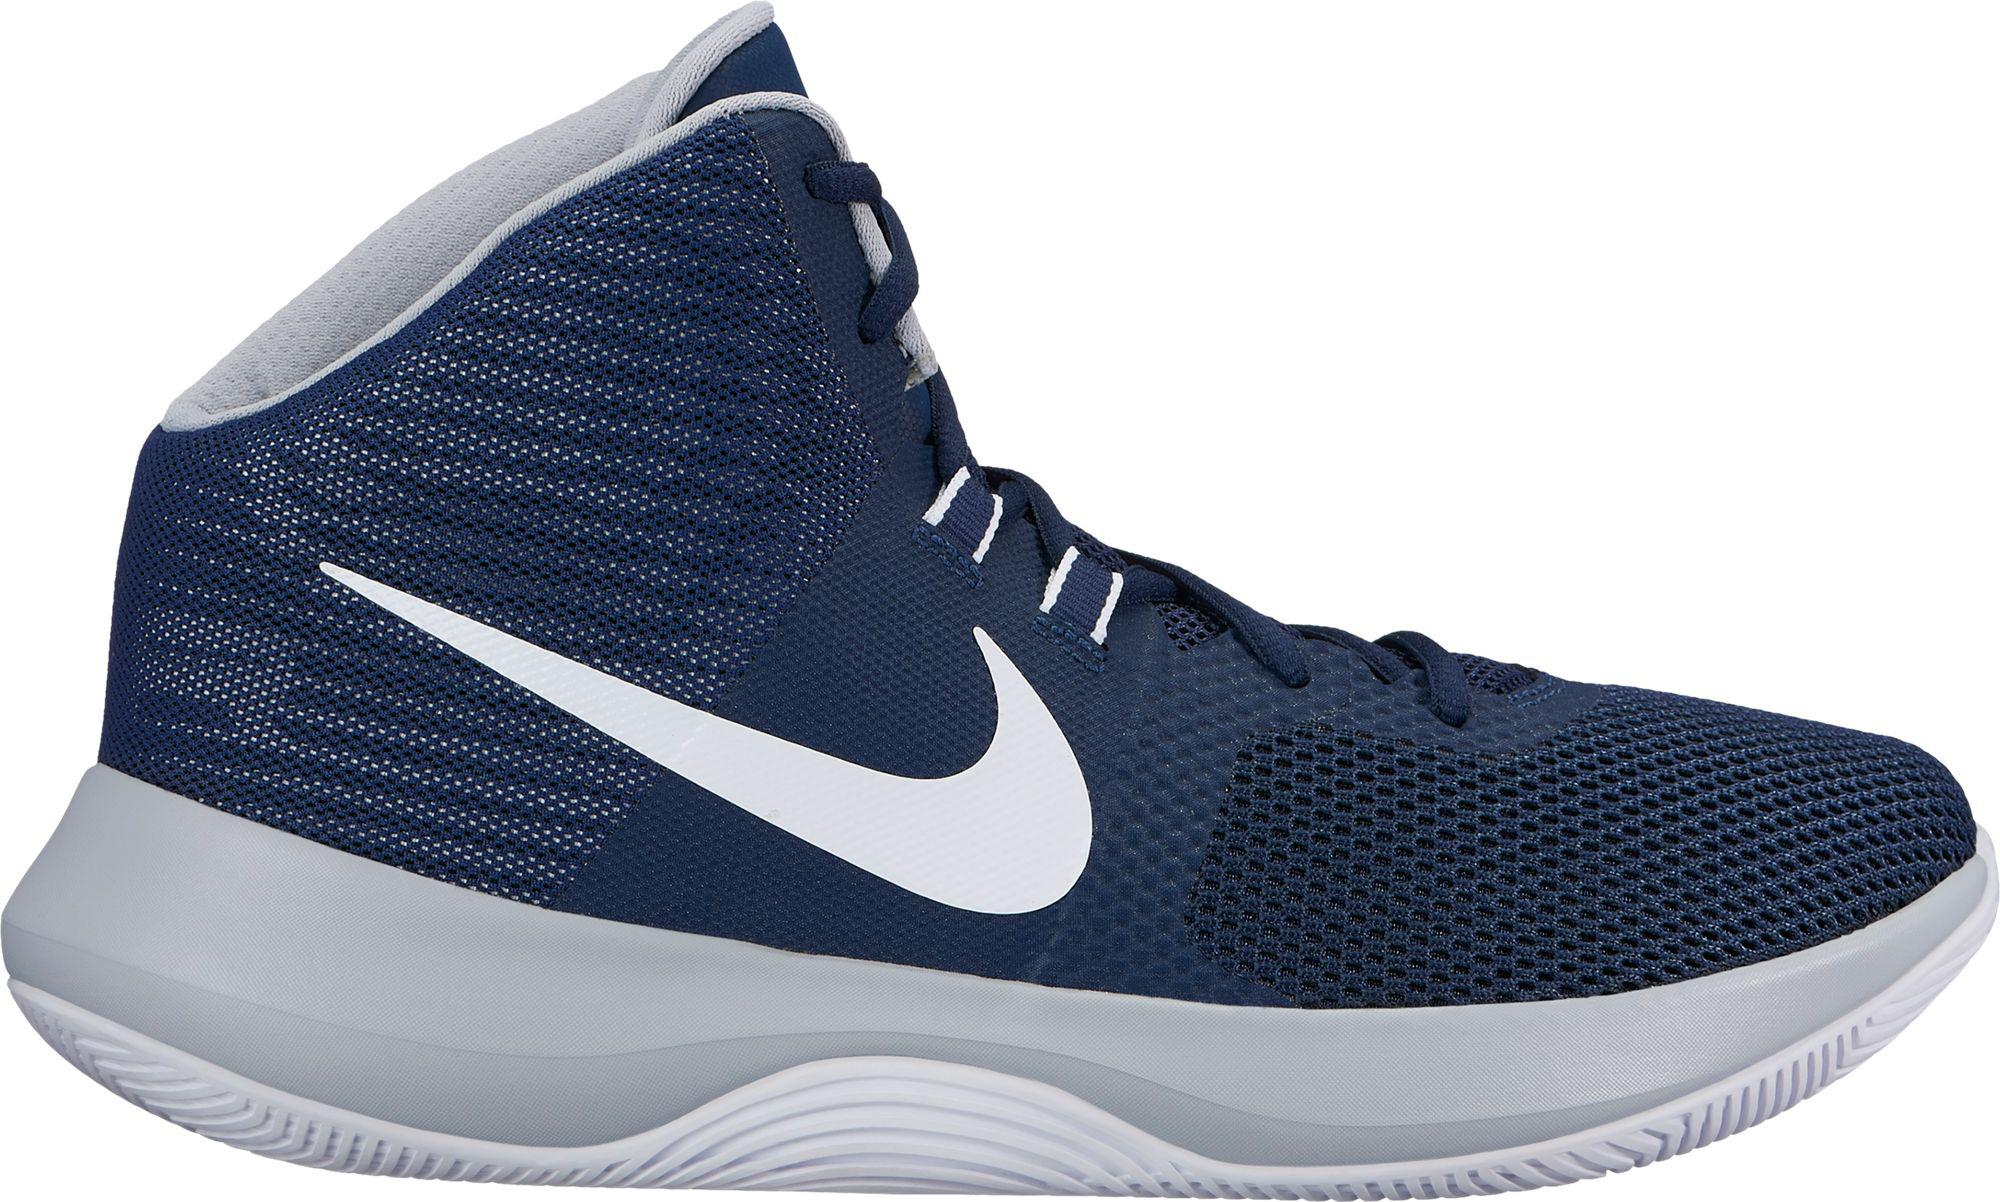 26f30dd1538a2 ... new arrivals nike blue air precision basketball shoes for men lyst  68a0d 704a2